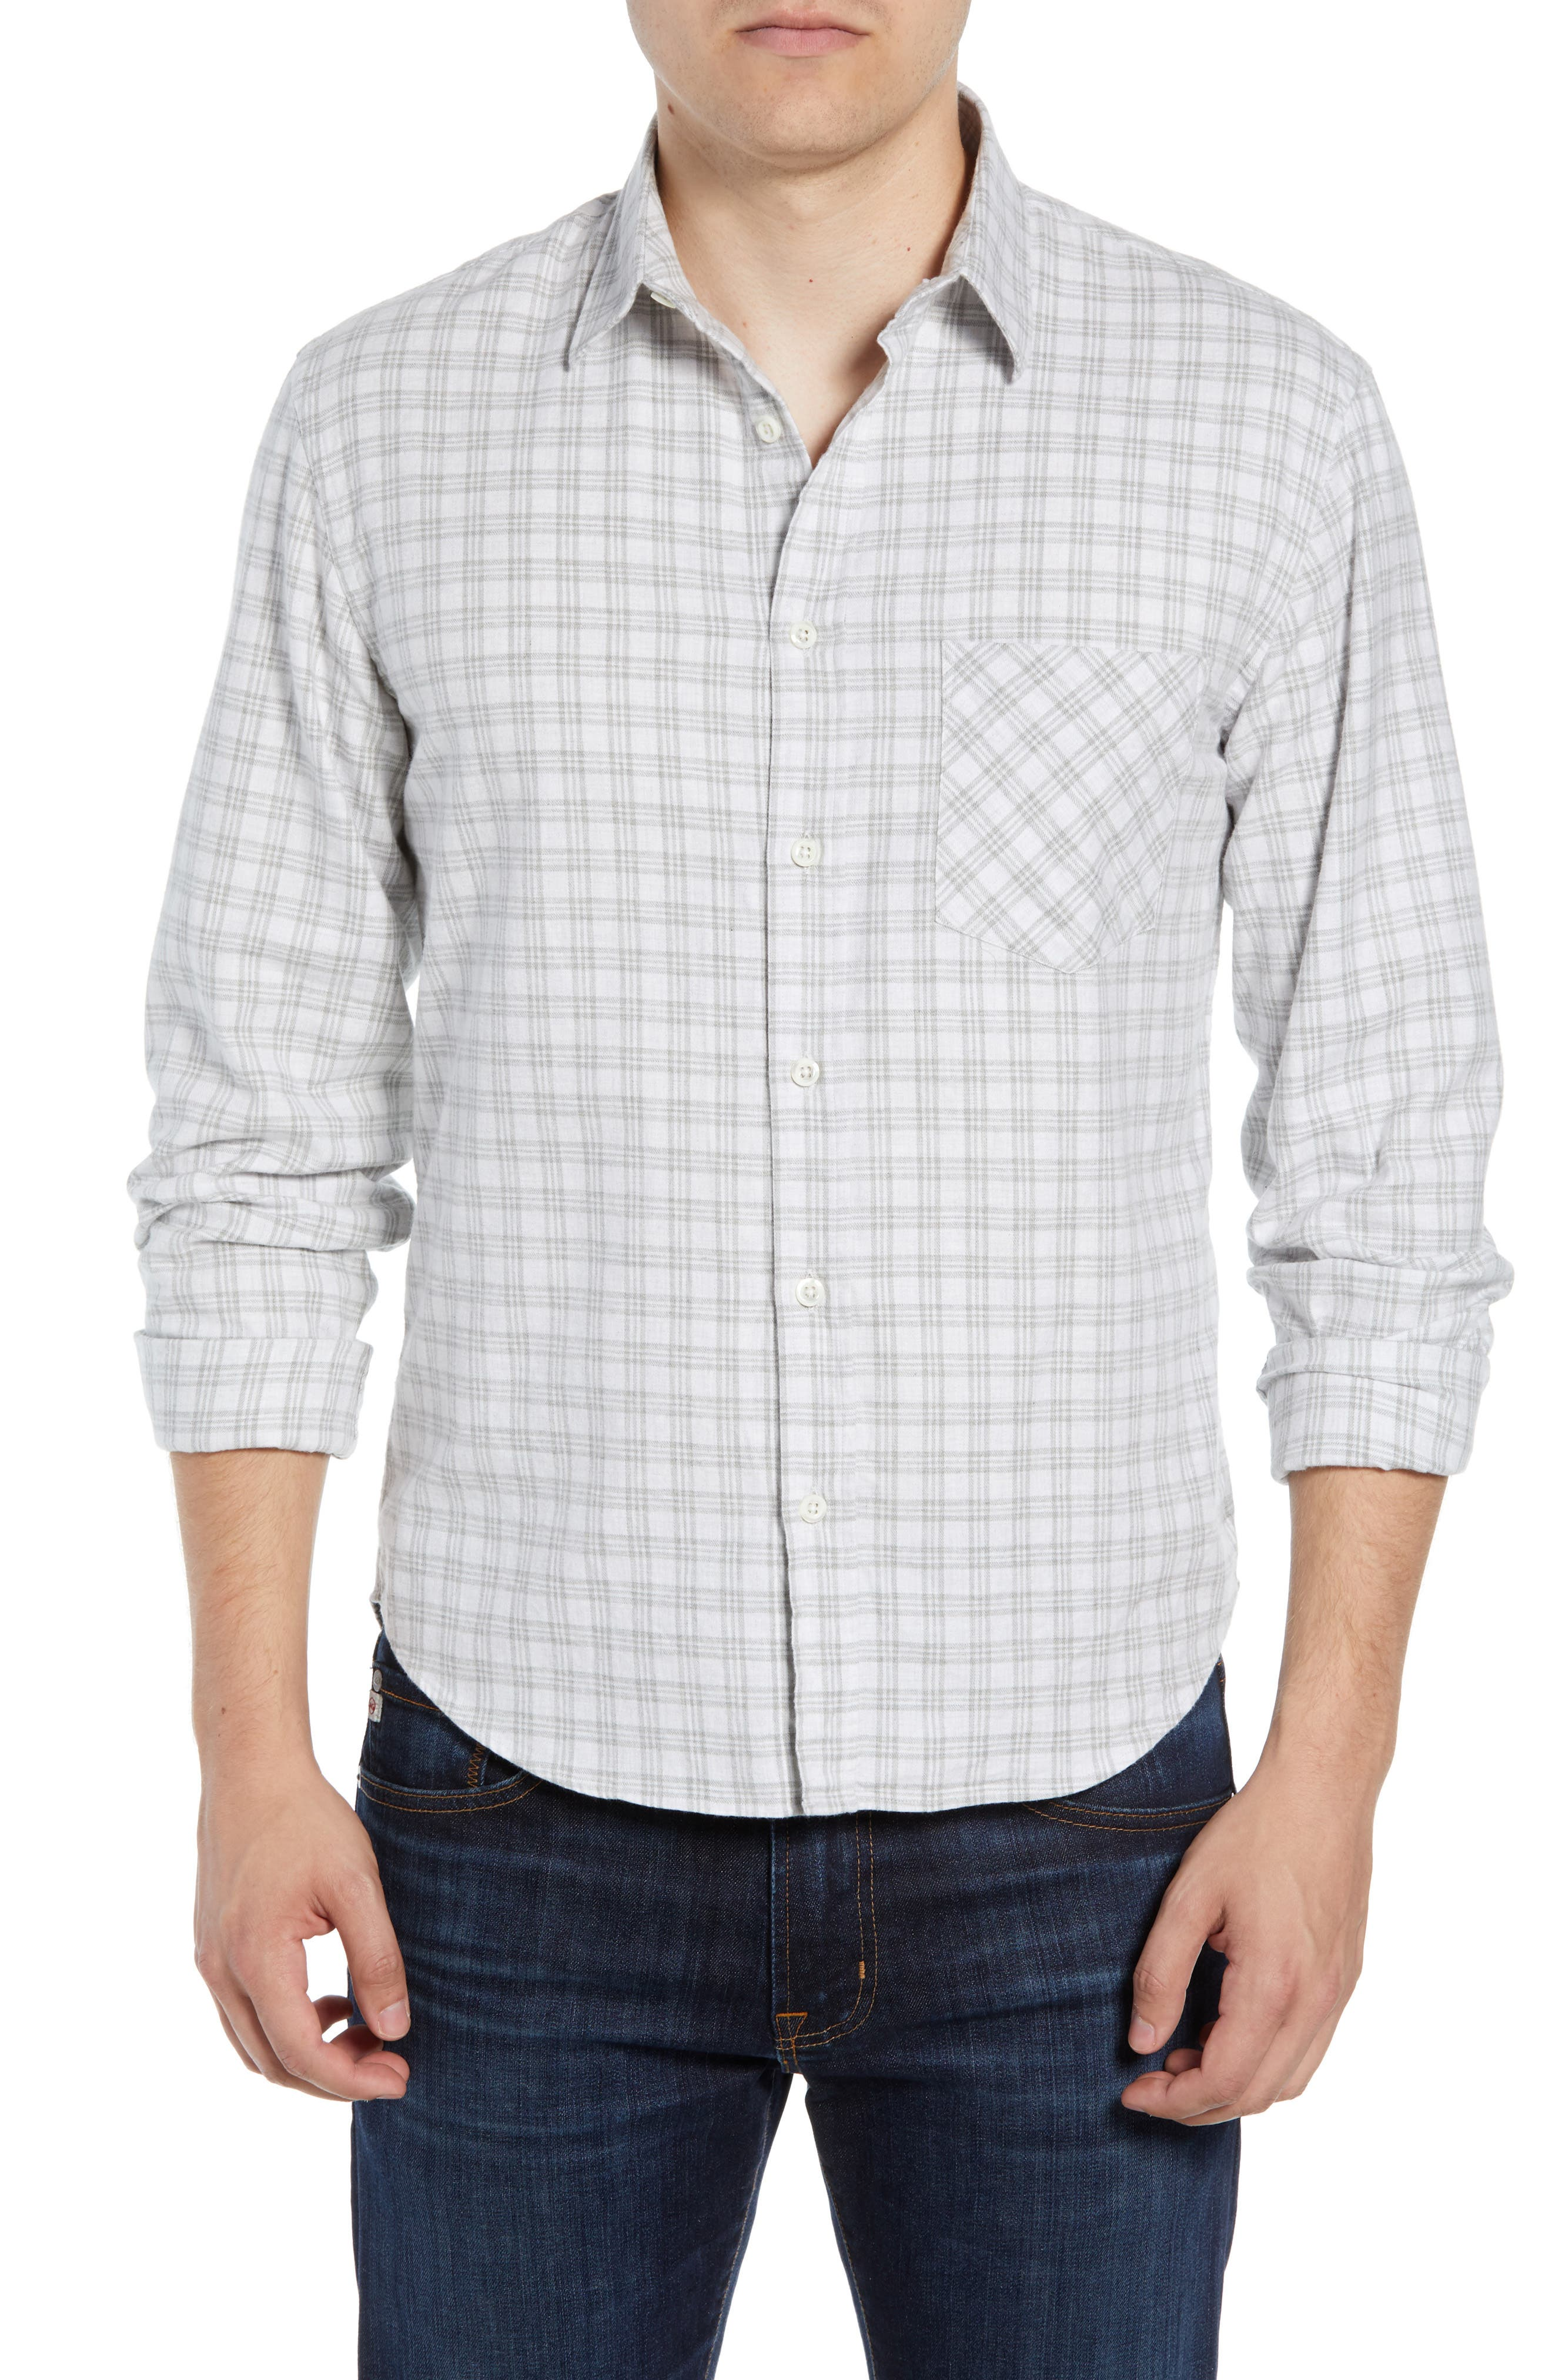 Kirby Slim Fit Check Sport Shirt,                         Main,                         color, LIGHT GREY/ NATURAL